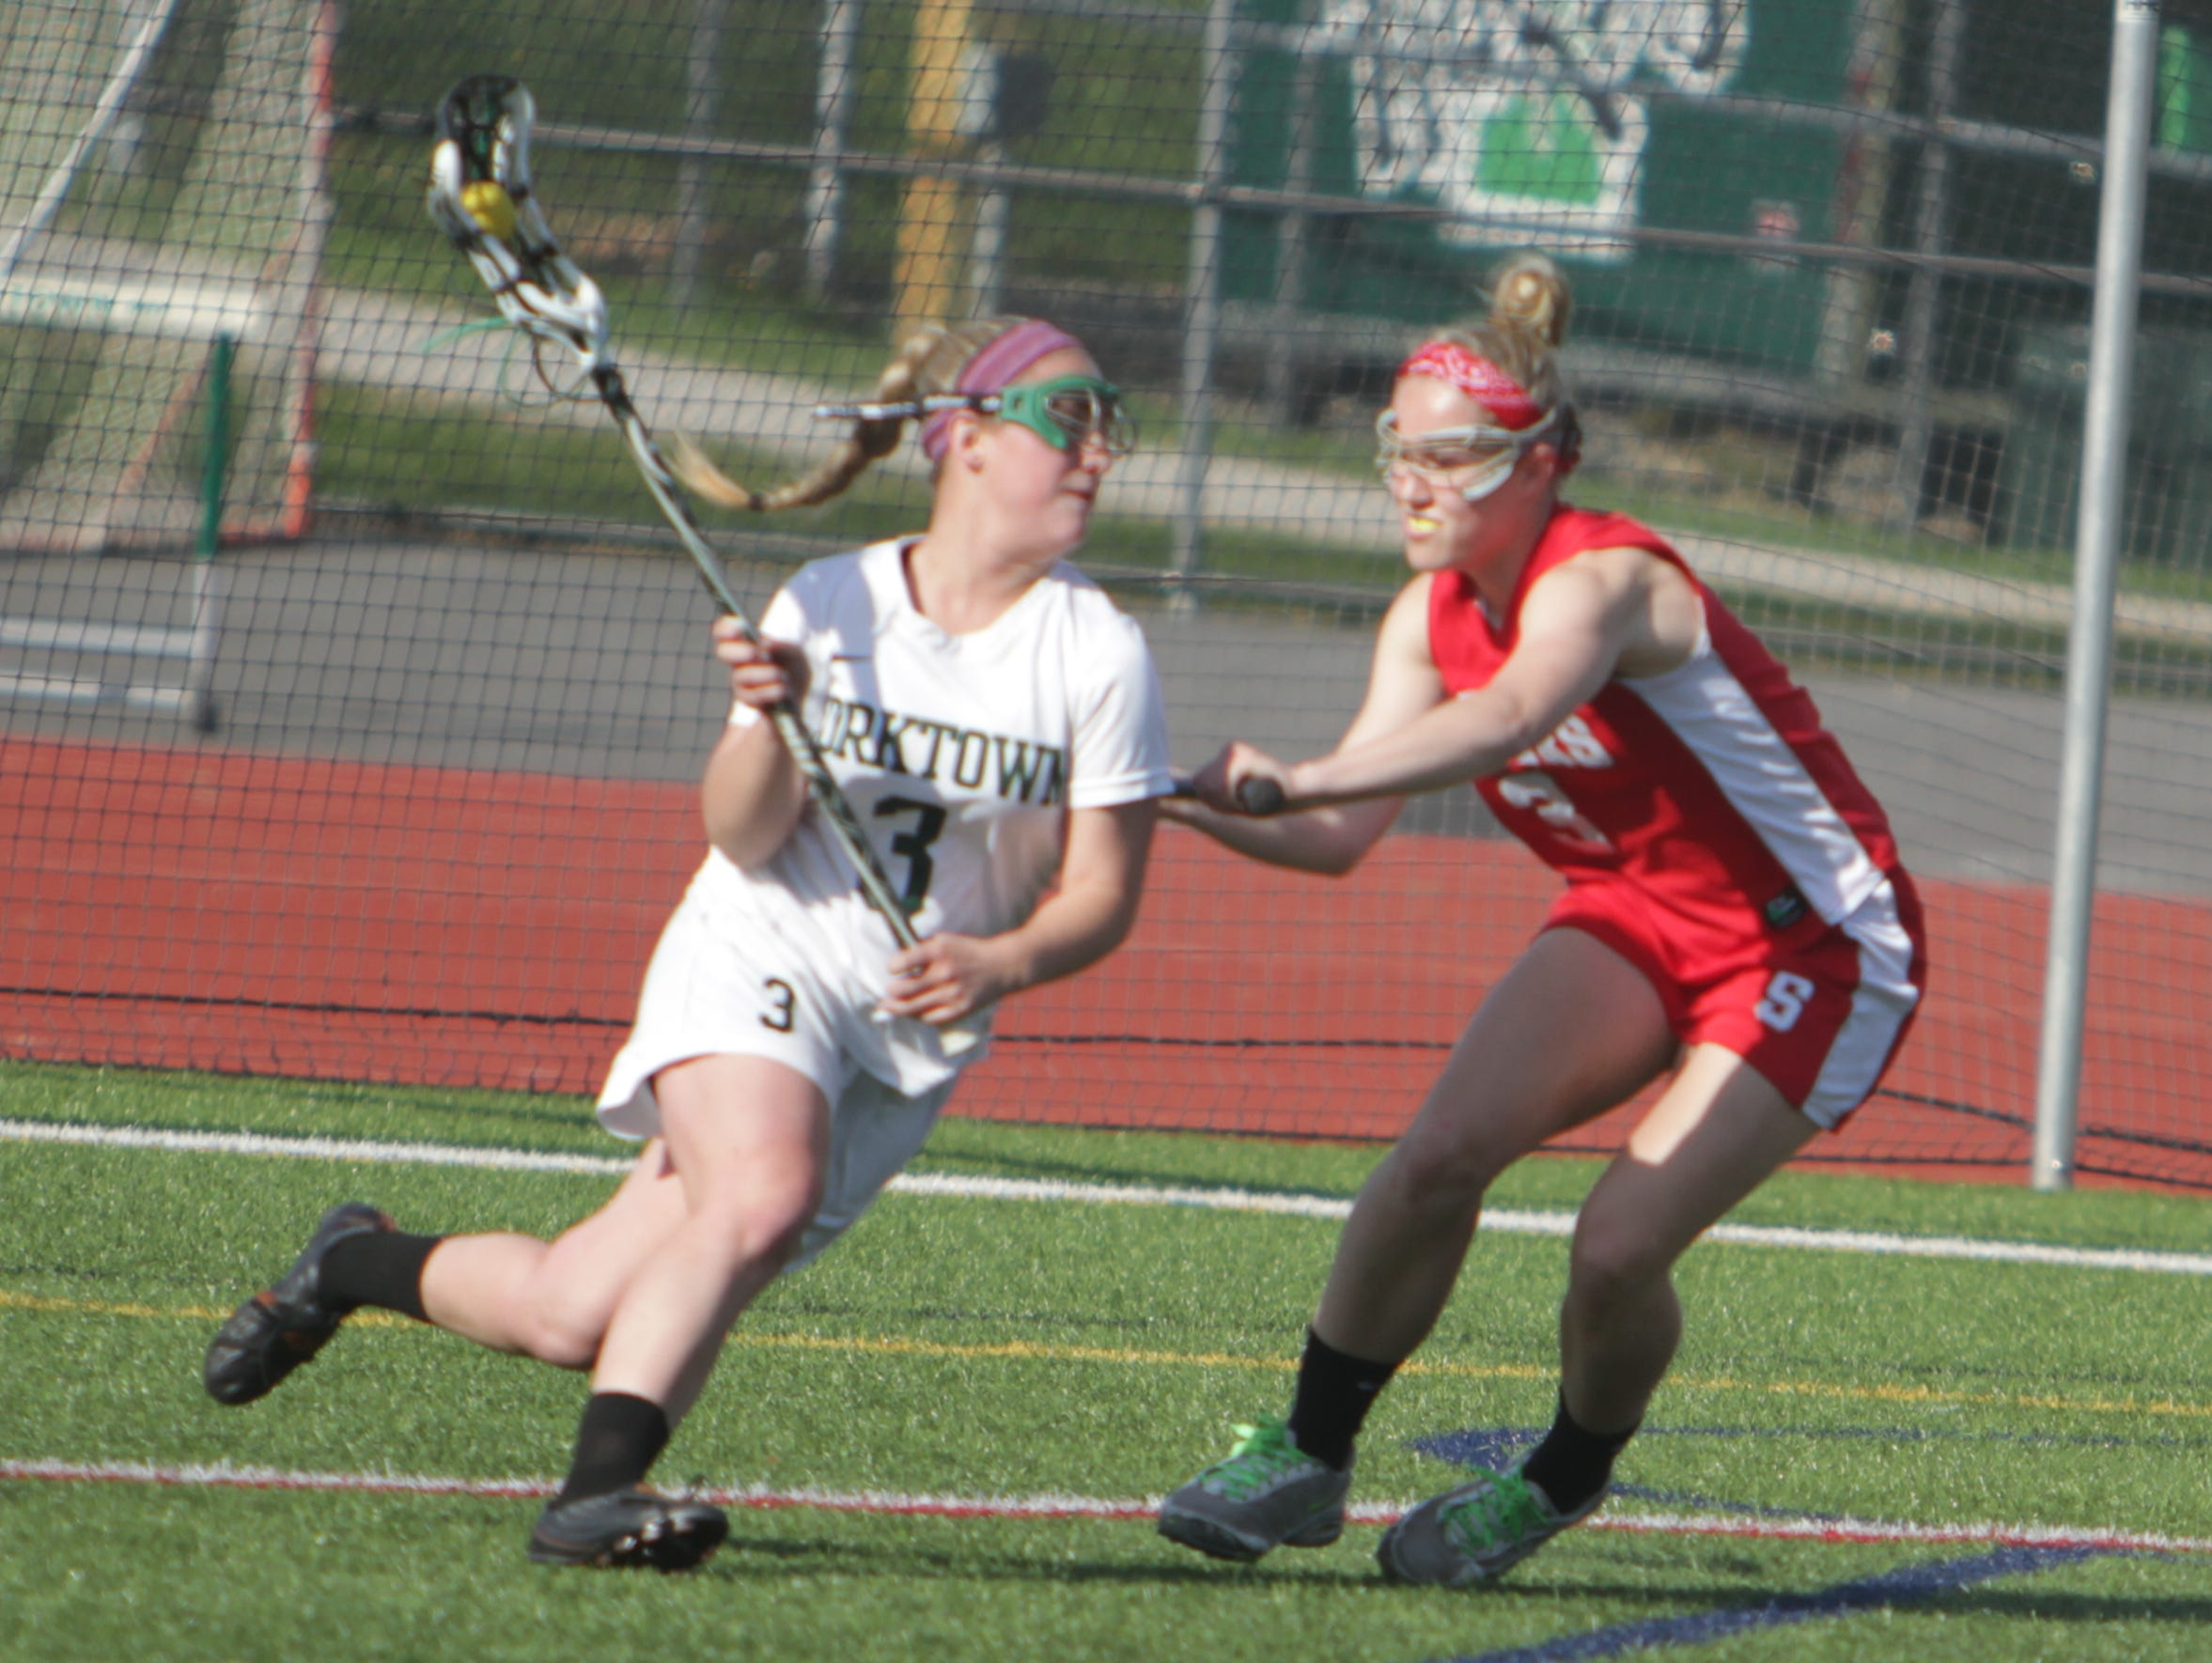 Action during a Section 1 girls lacrosse game between Yorktown and Somers at Yorktown High School on Thursday, April 21st, 2016. Somers won 11-10.